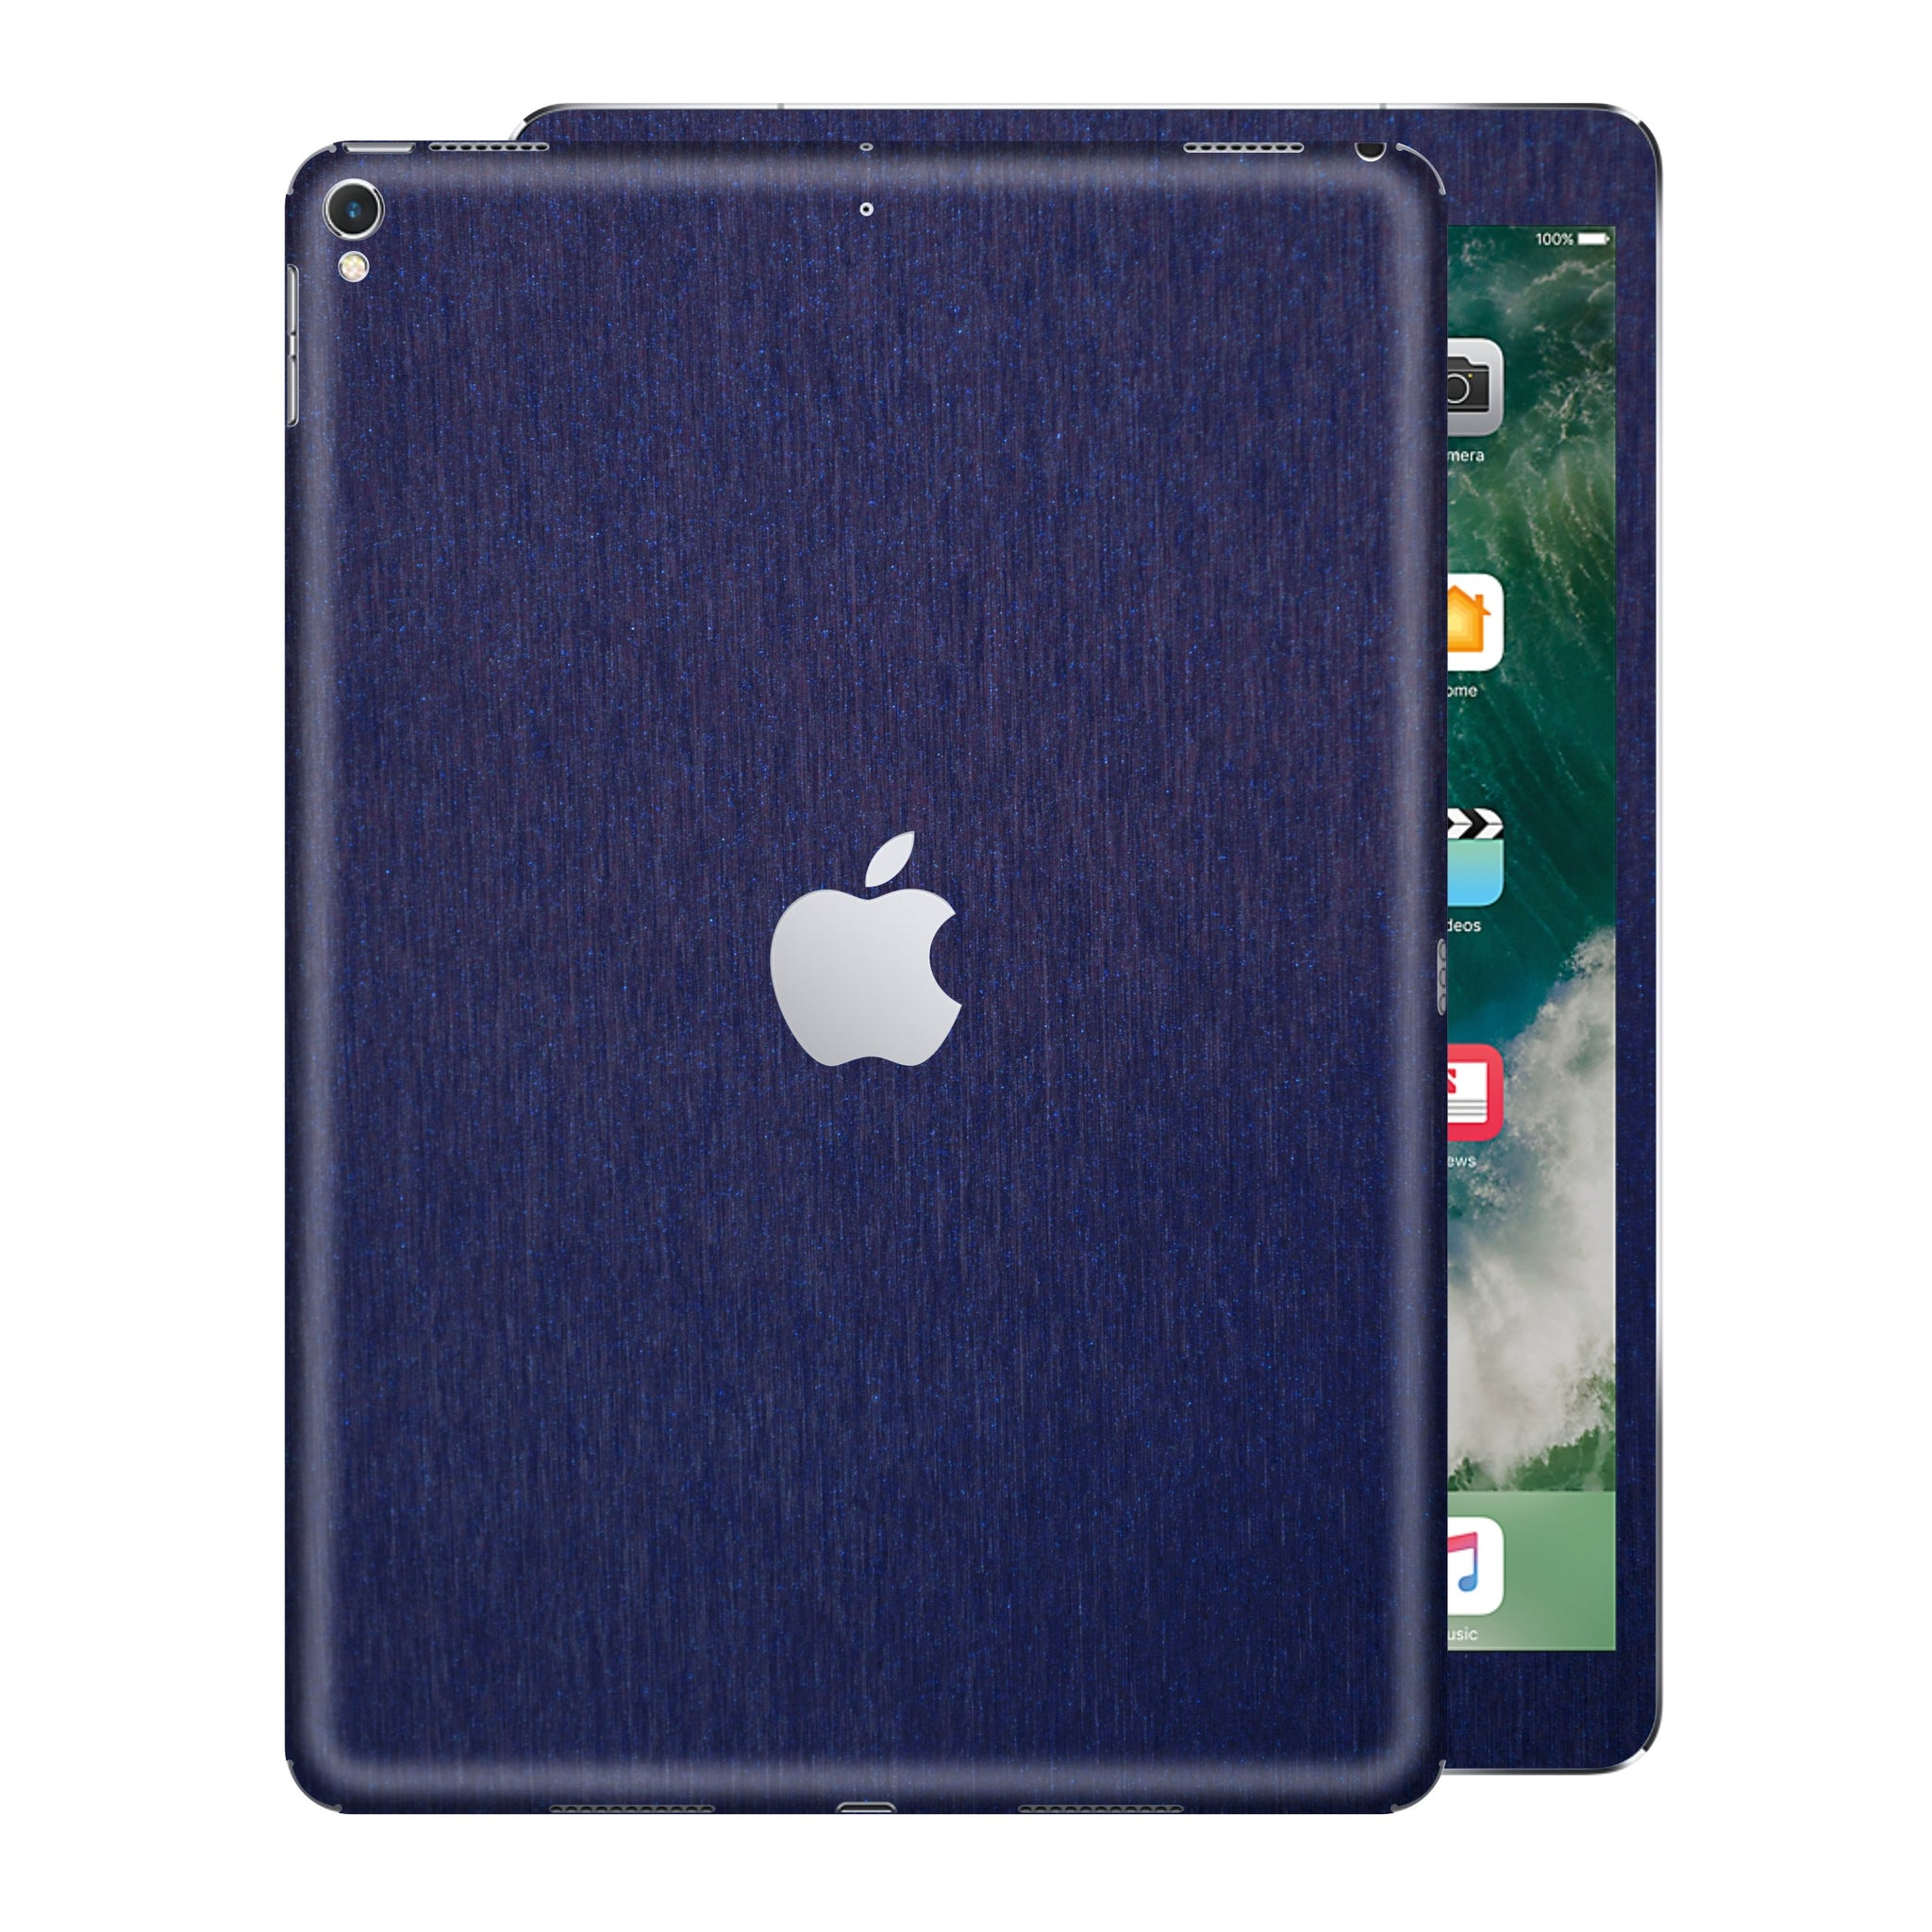 iPad PRO 12.9 inch 2017 3M Brushed Blue Metallic Skin Wrap Sticker Decal Cover Protector by EasySkinz